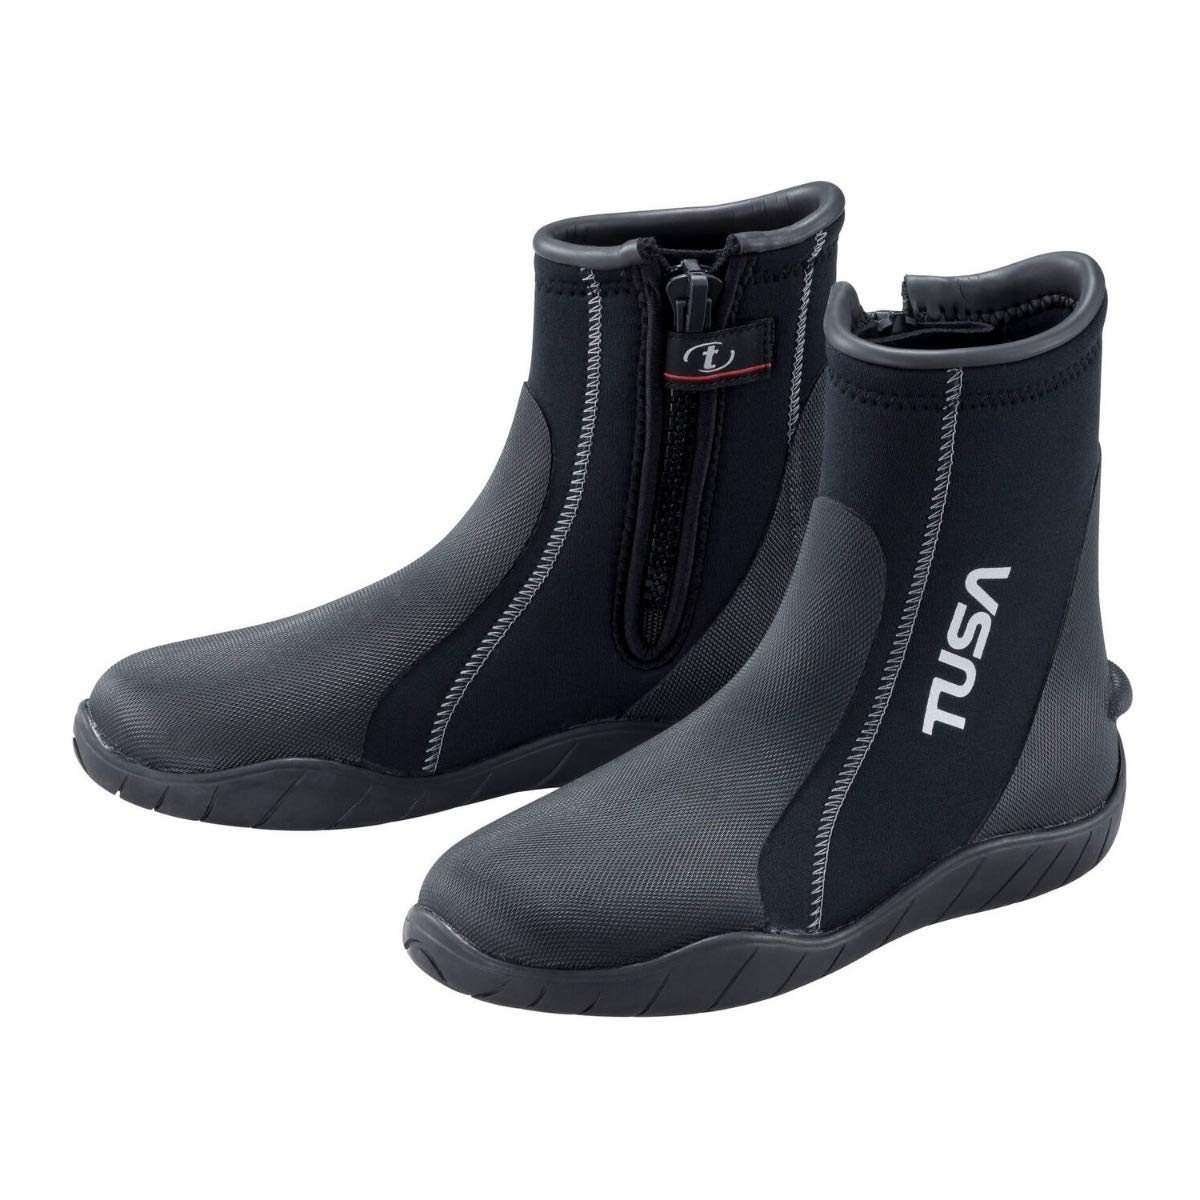 TUSA DB-0101 Imprex 5mm Dive Boot, Size 9